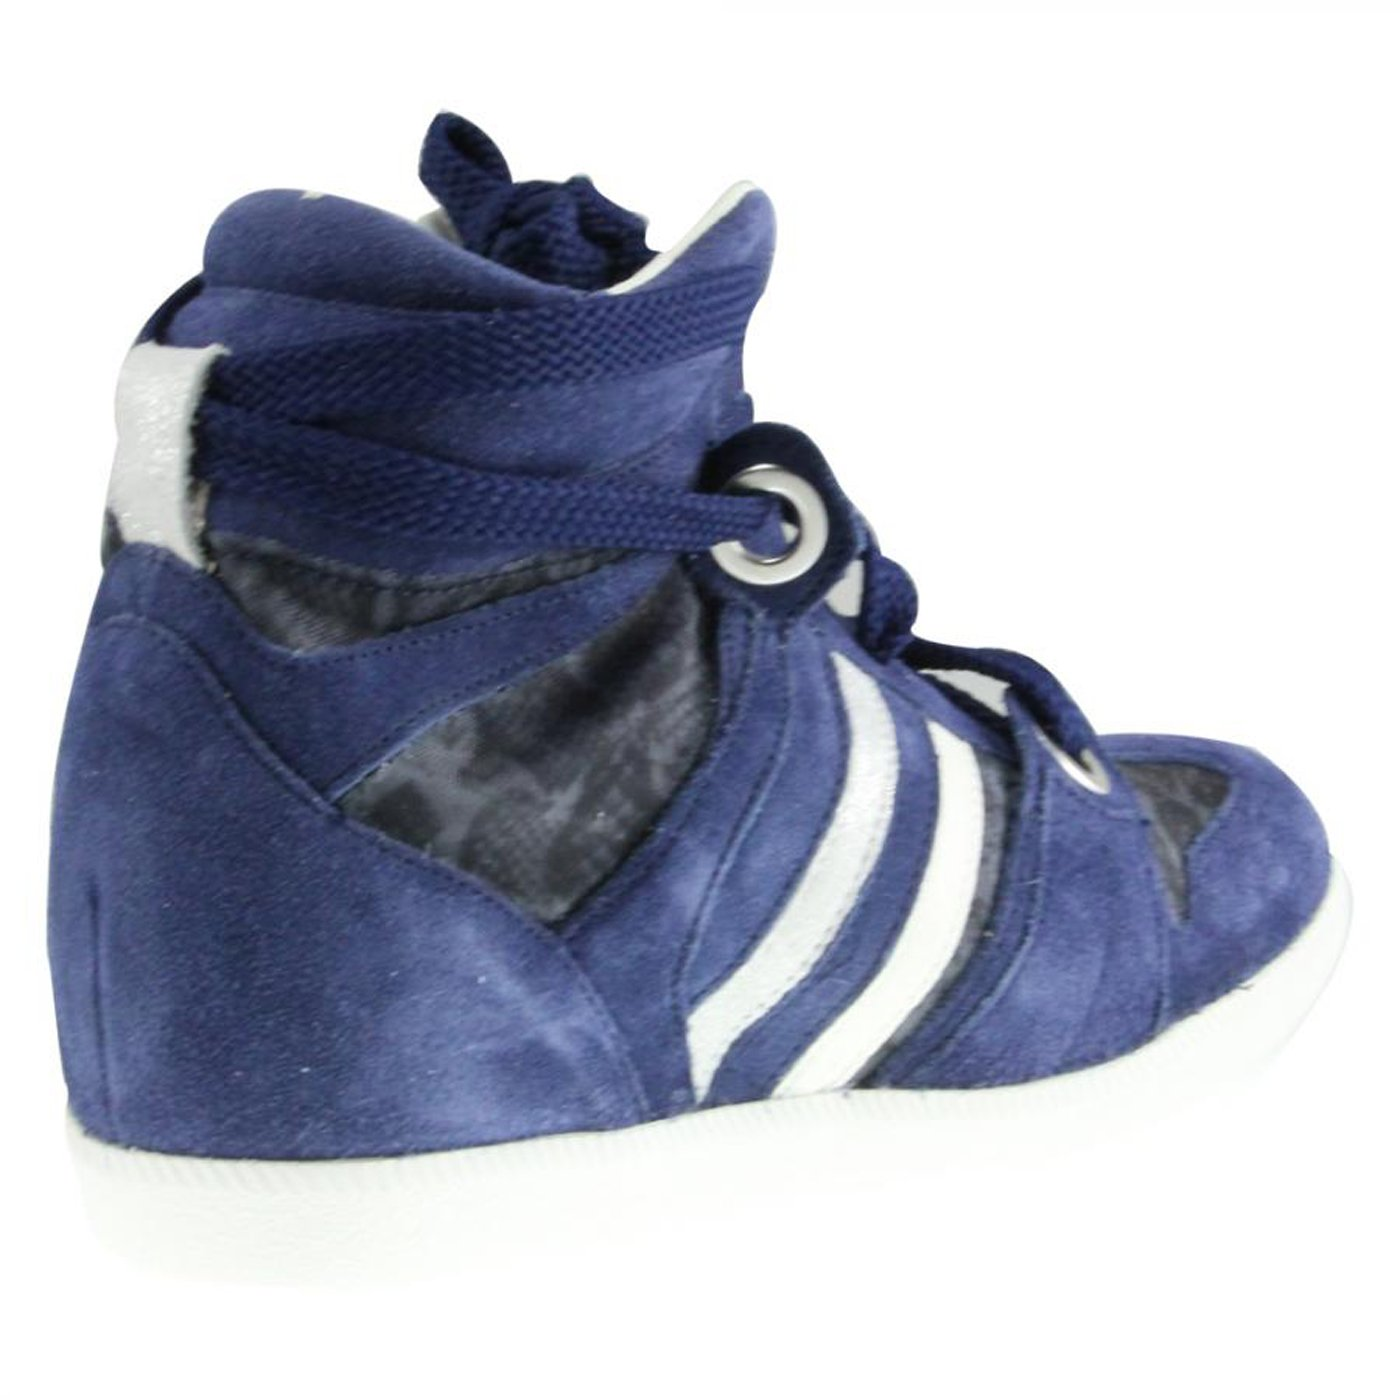 SERAFINI donna Wedges 2751 Manhattan ritagliare Snake Blue 2751 Wedges Blu 046d37